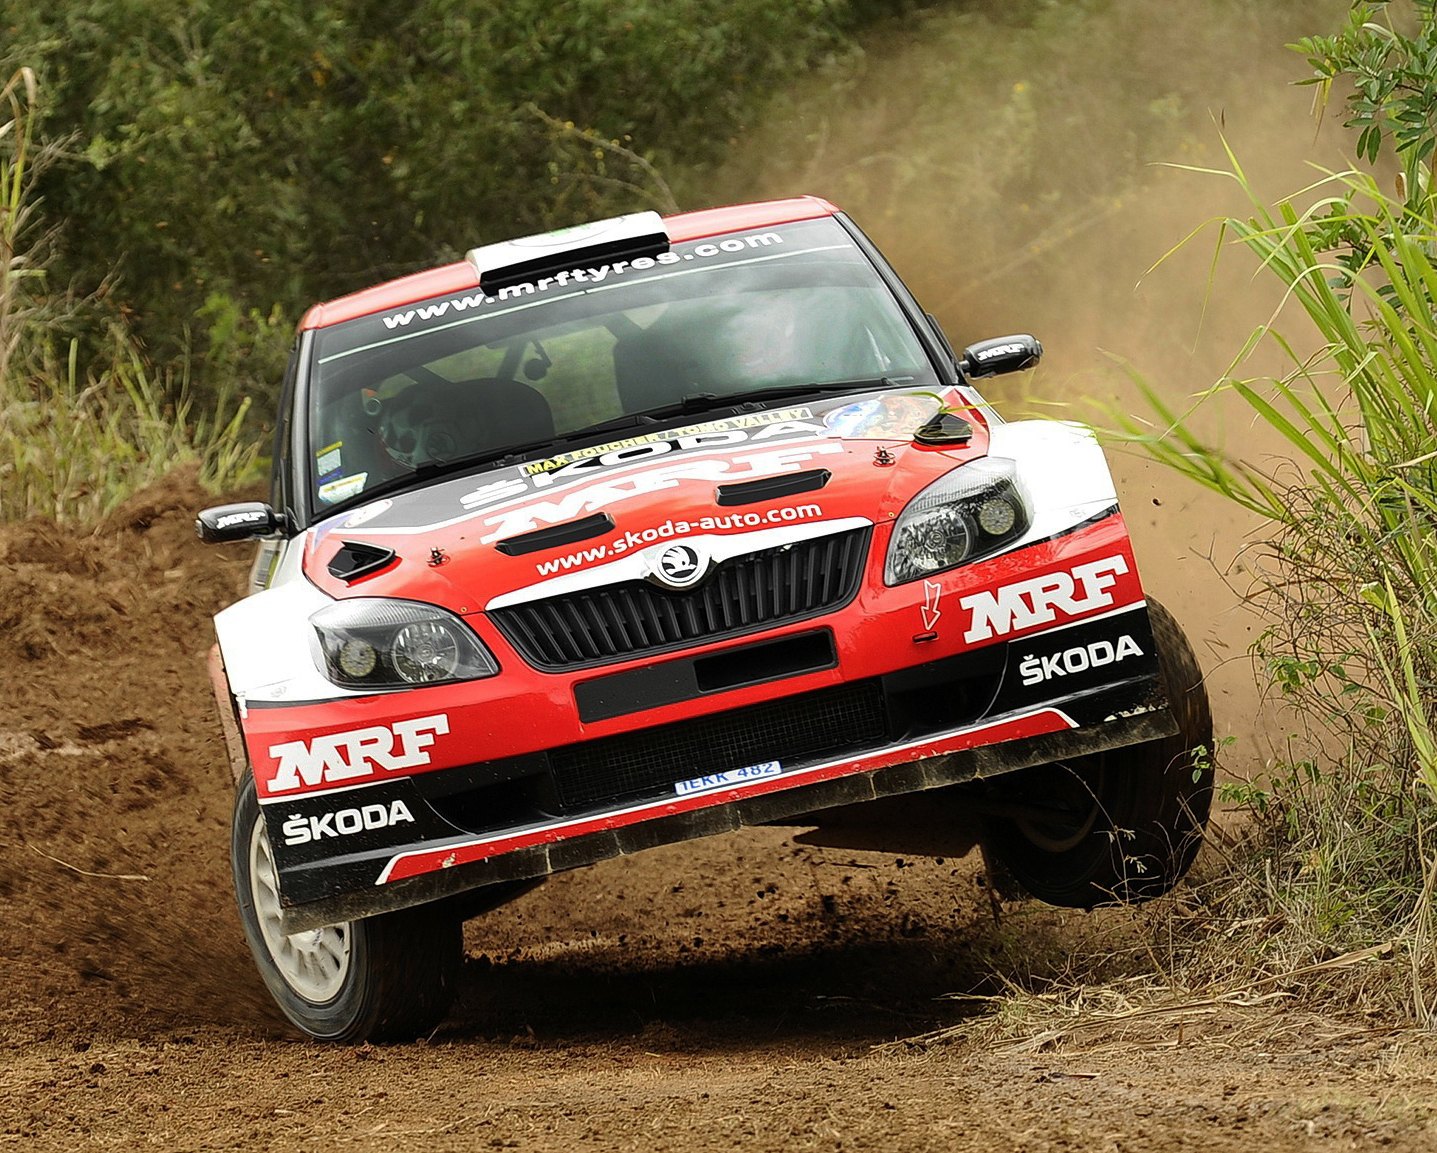 KOPECKÝ AND GILL PRESENT ŠKODA WITH ITS SECOND ONE-TWO OF THE APRC SEASON